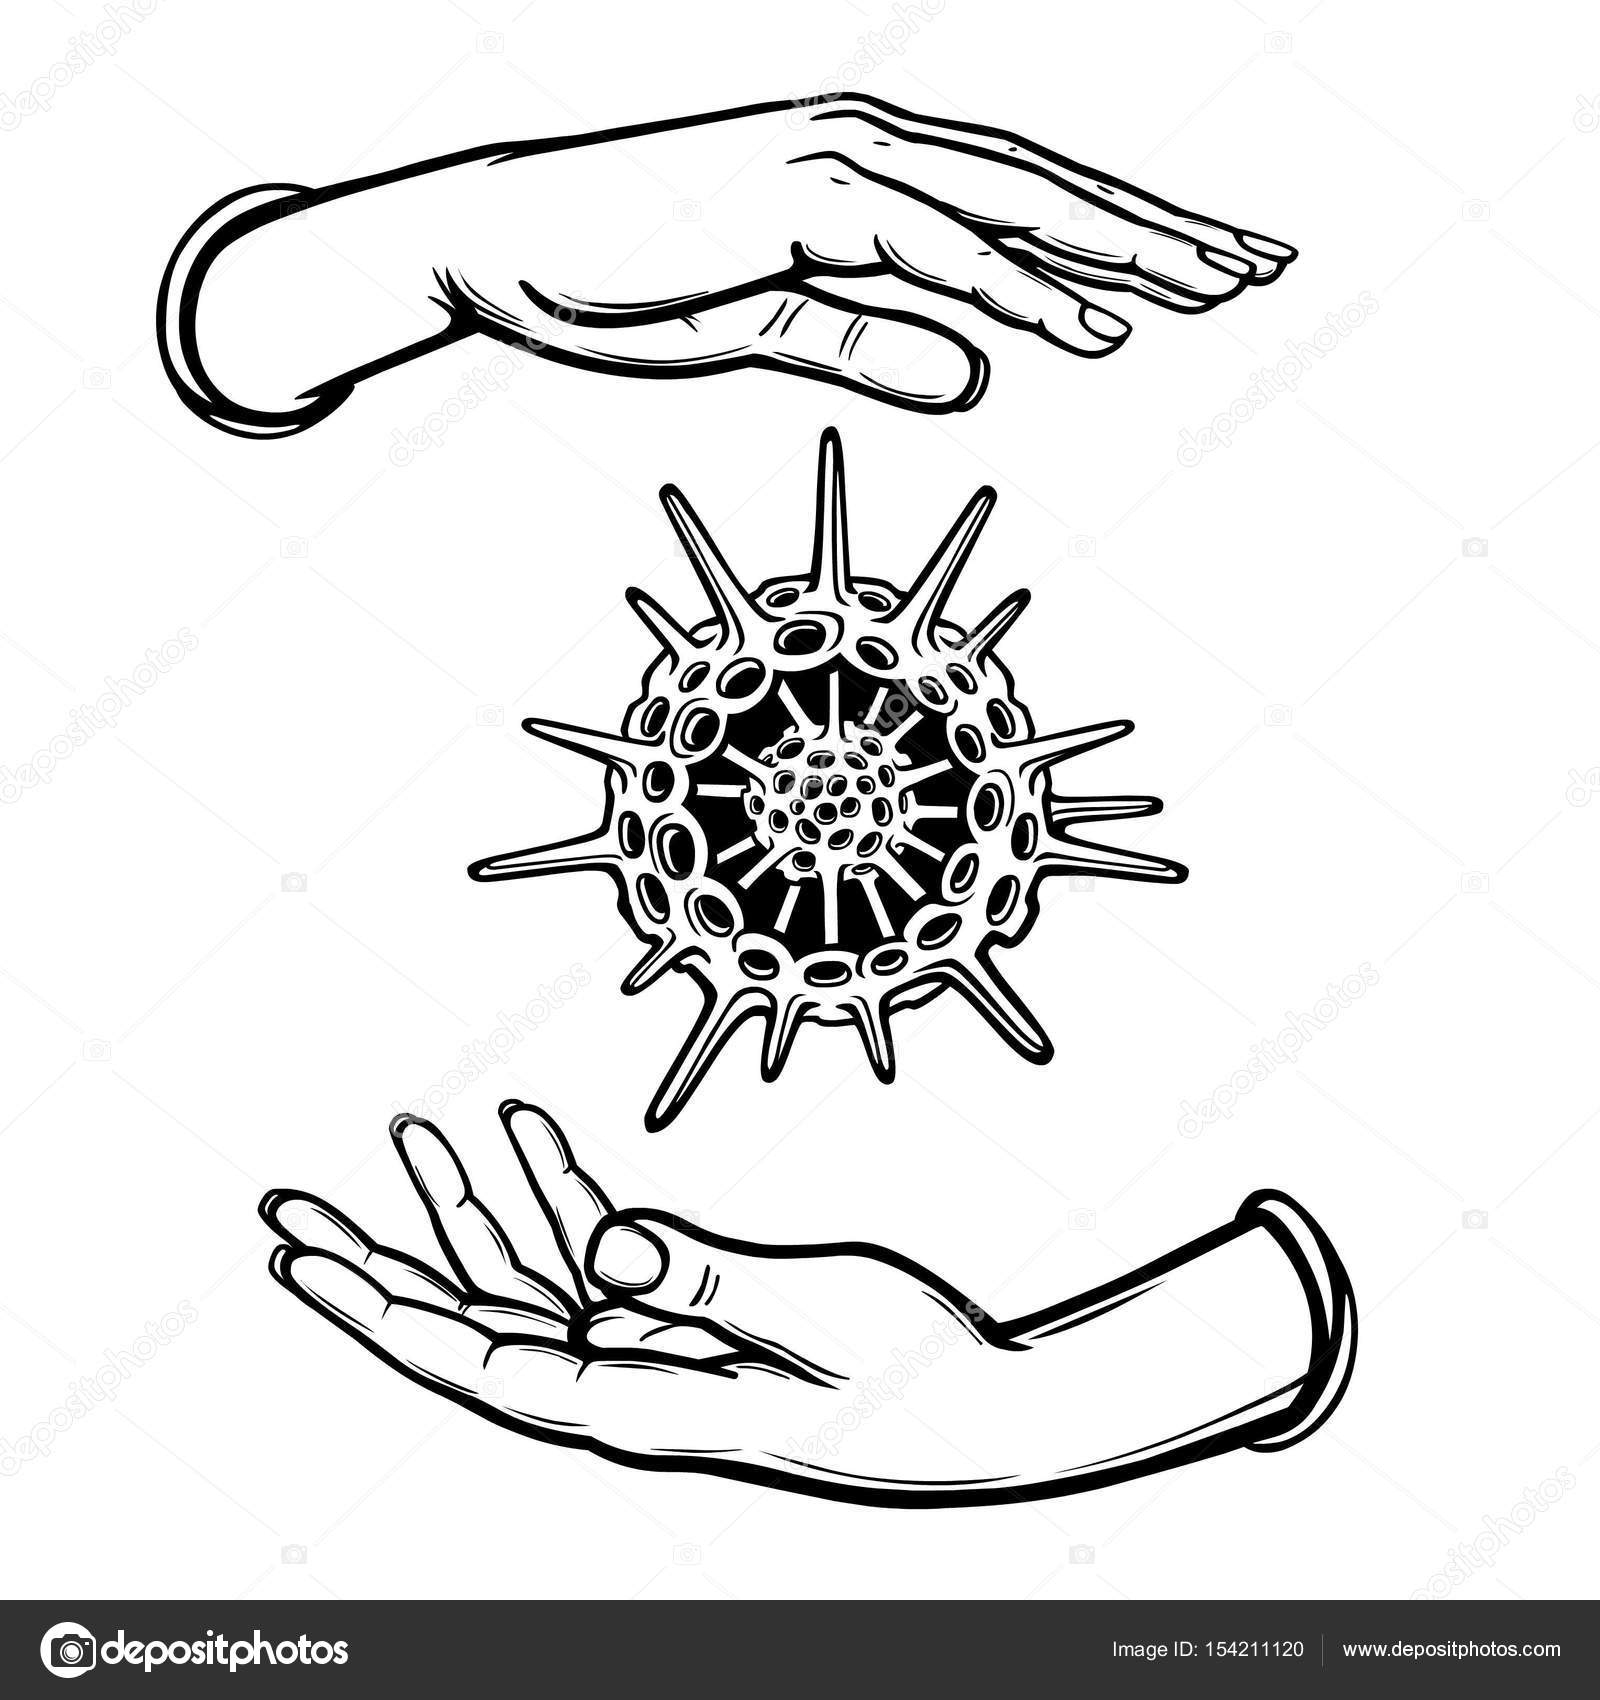 human hands hold a skeleton of a radiolaria  coloring book  vector  illustration isolated on